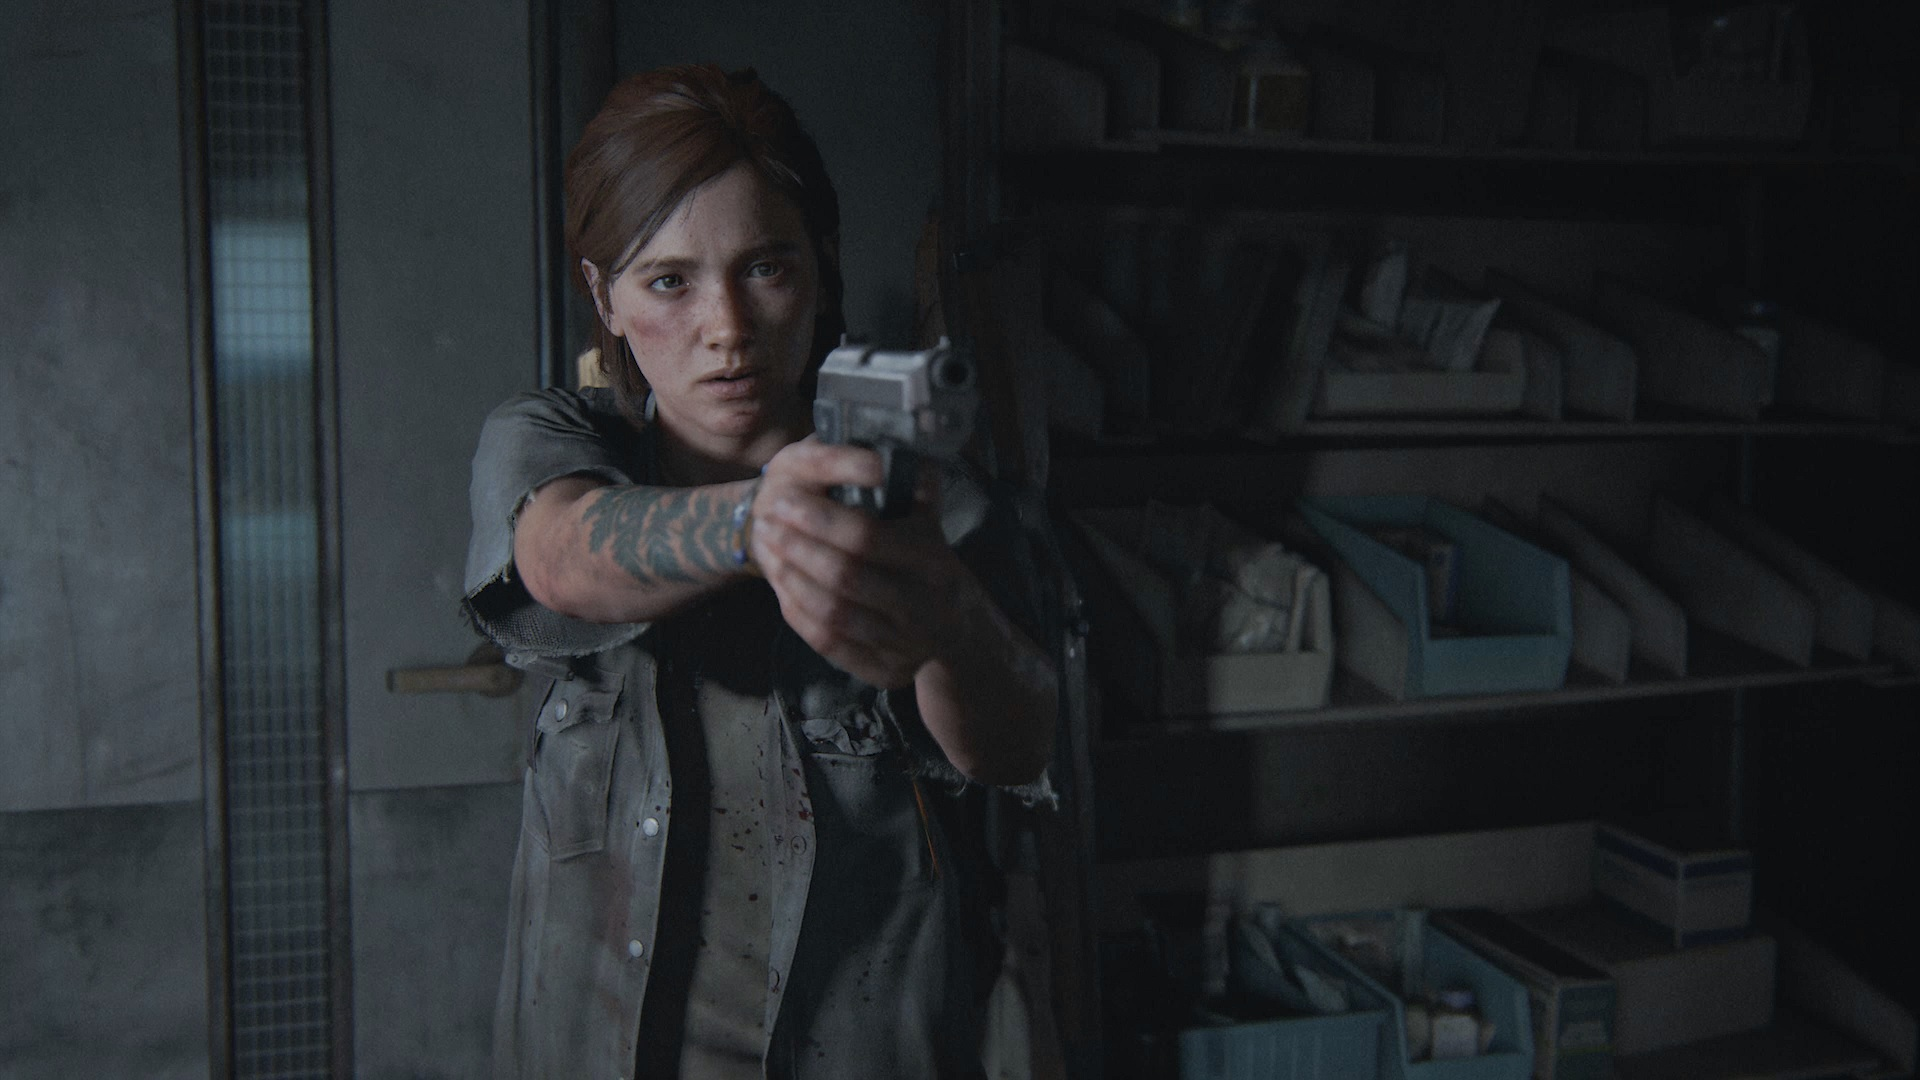 Best Ps4 games of 2020 - Tlou2